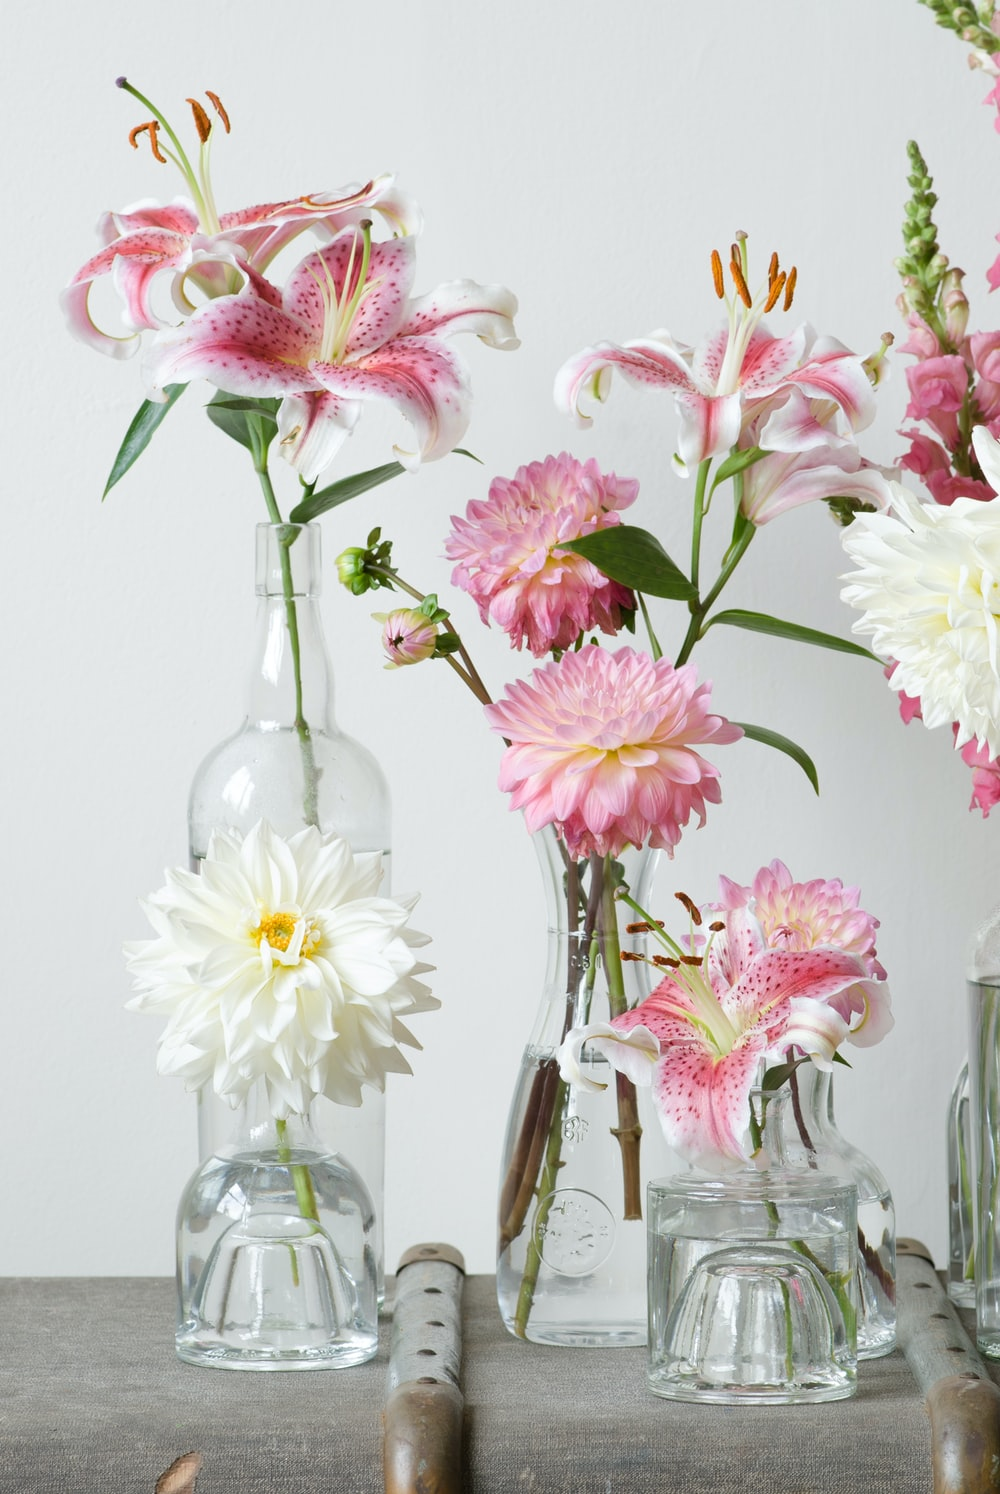 green-leafed plants with pink flowers in clear glass vase